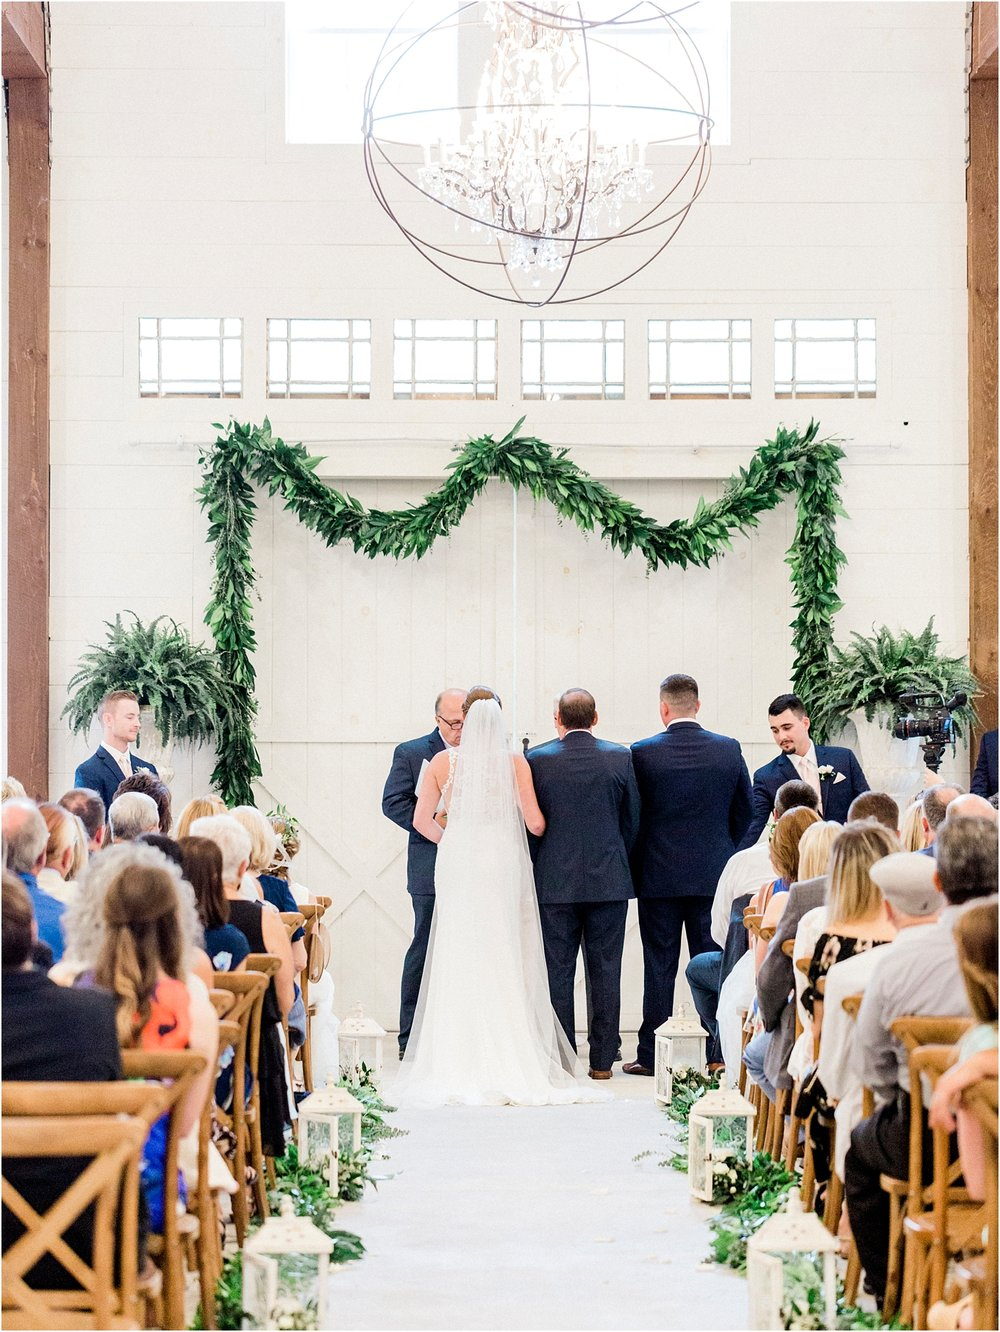 Lisa Silva Photography- Ponte Vedra Beach, St. Augustine and Jacksonville, Florida Fine Art Film Wedding and Boudoir Photography- Elegant Blush and Navy Wedding at Chandler Oaks Barn in St. Augustine, Florida_0065.jpg